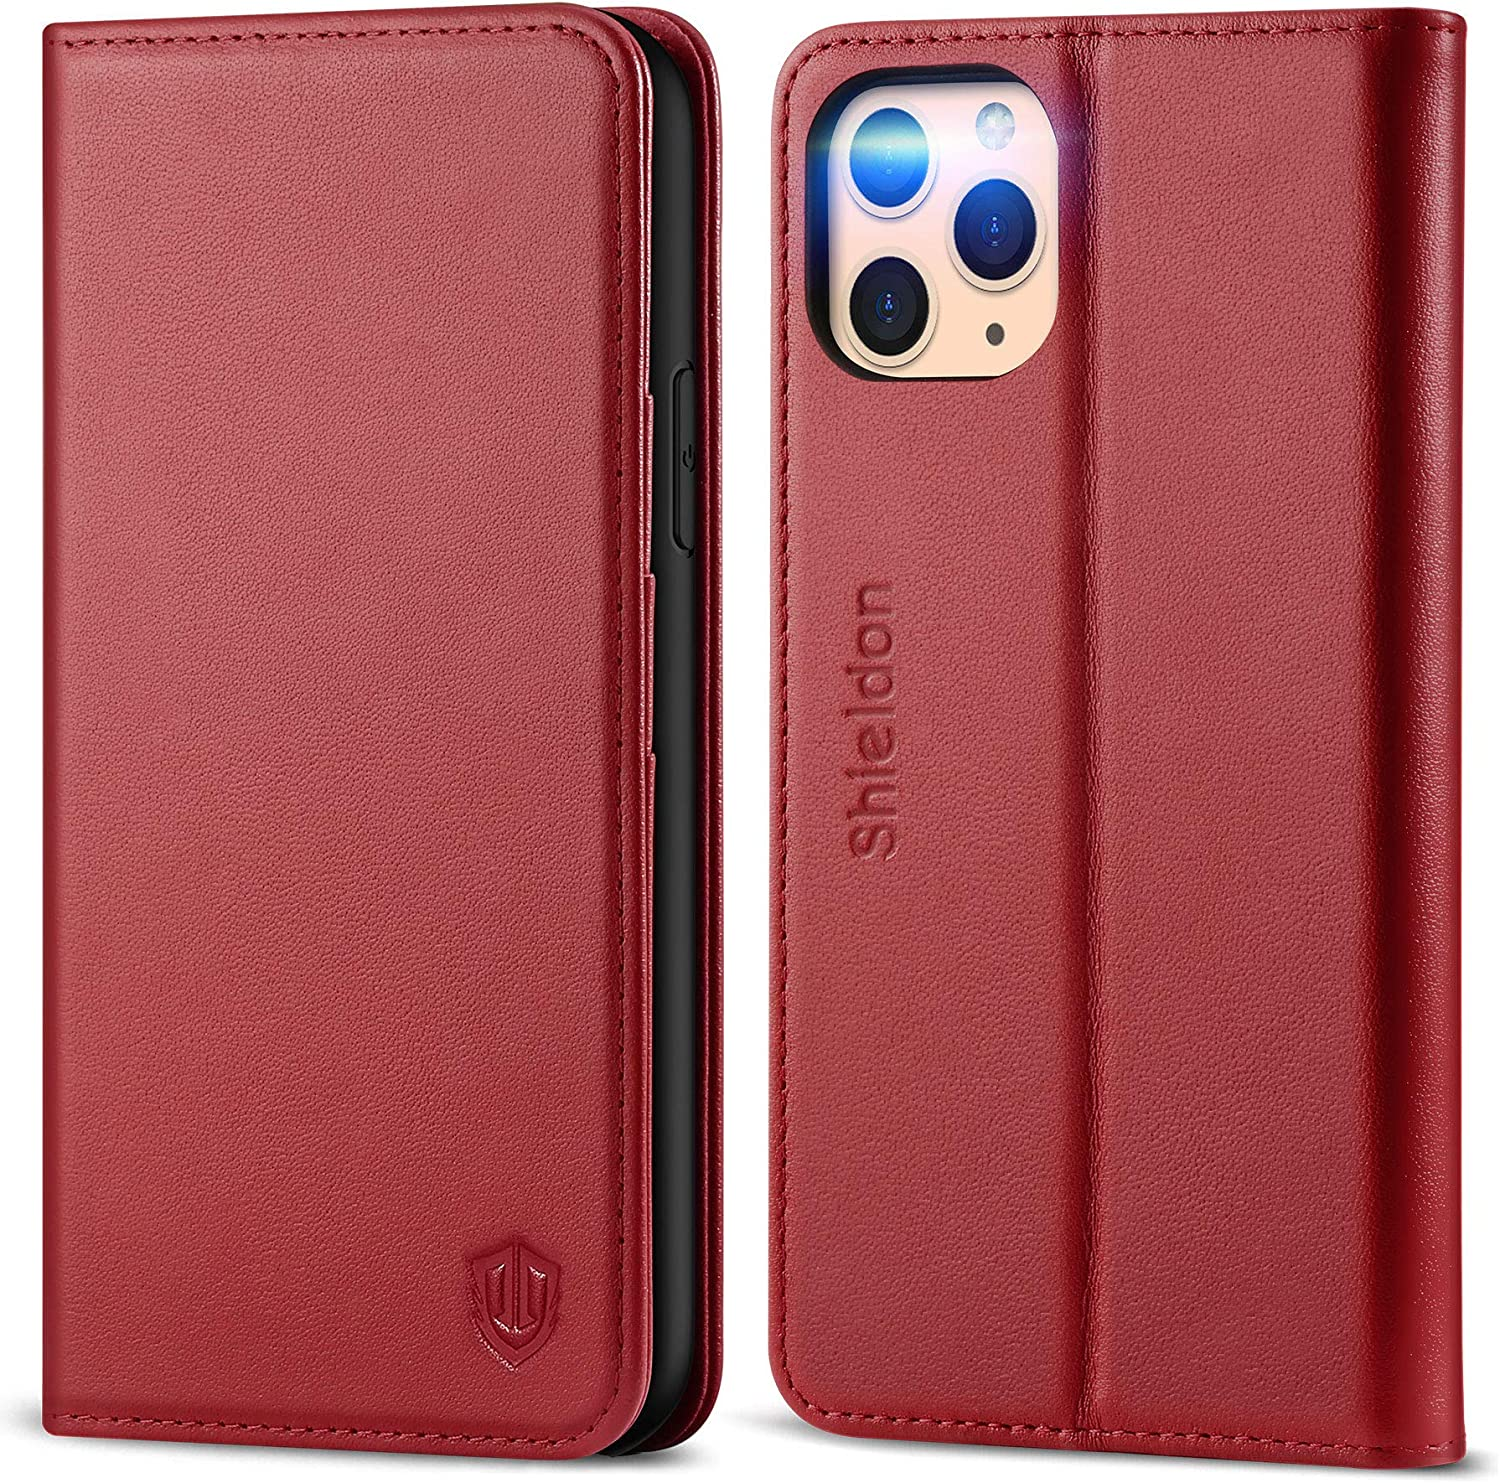 SHIELDON iPhone 11 Pro Case, Genuine Leather Auto Sleep Wake Wallet Case Flip Magnetic Cover RFID Blocking Card Slots Kickstand Shockproof Case Compatible with iPhone 11 Pro (5.8